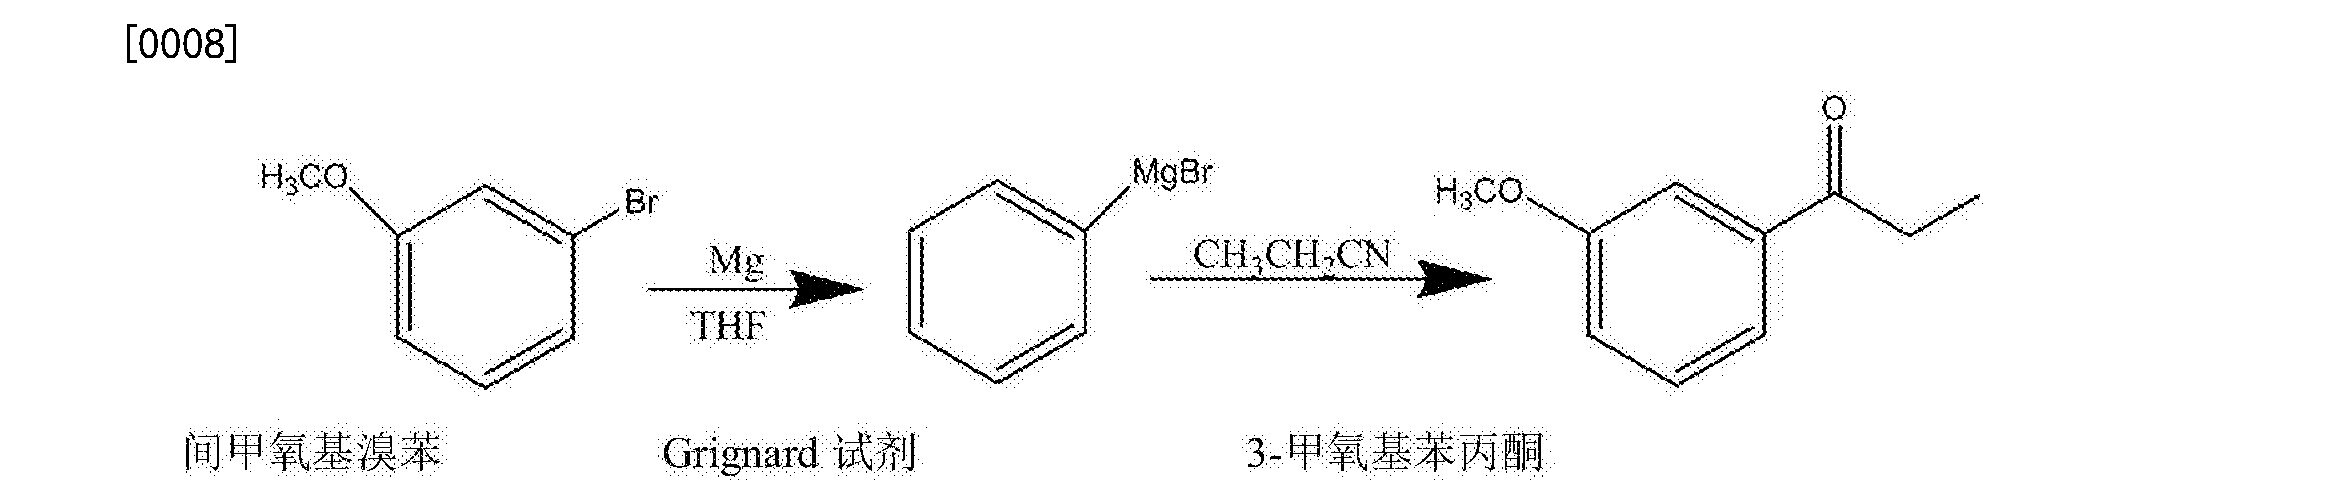 CN106518635A - Synthesis method for 3-methoxypropiophenone